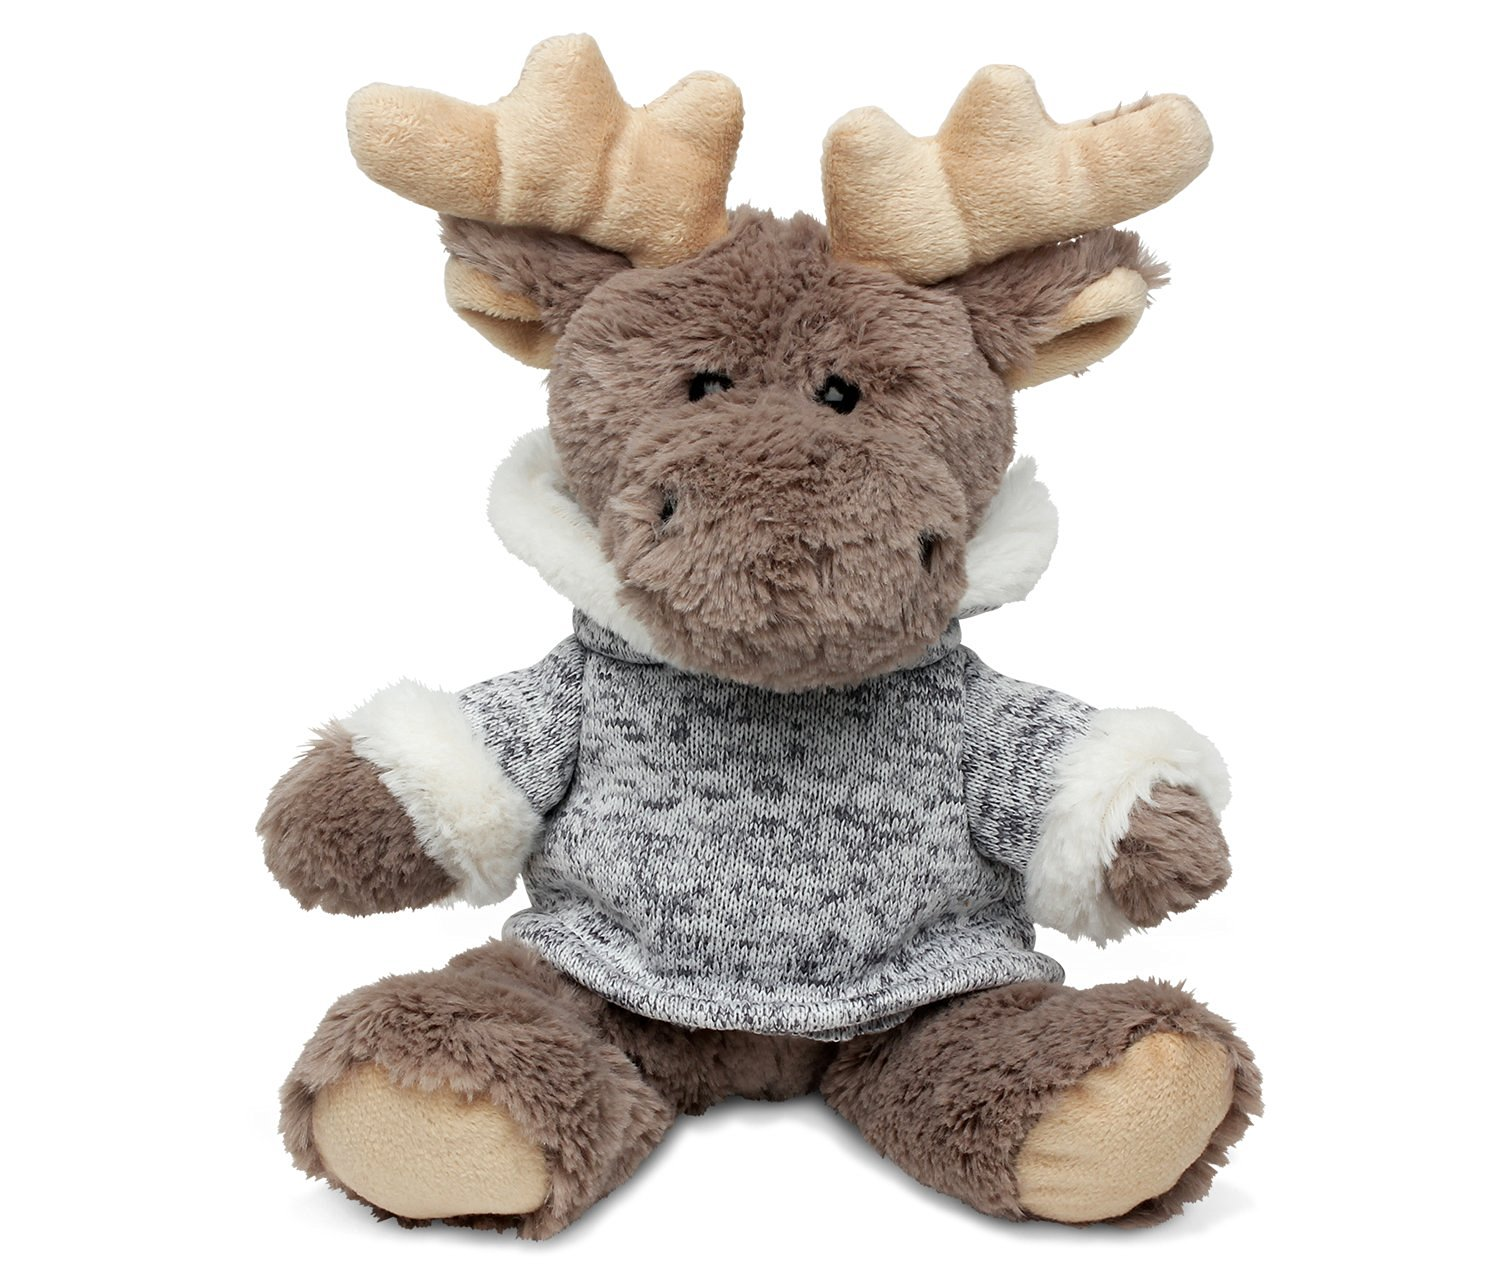 Buy Puzzled Sitting Moose With Grey Hooded Sweater Super Soft